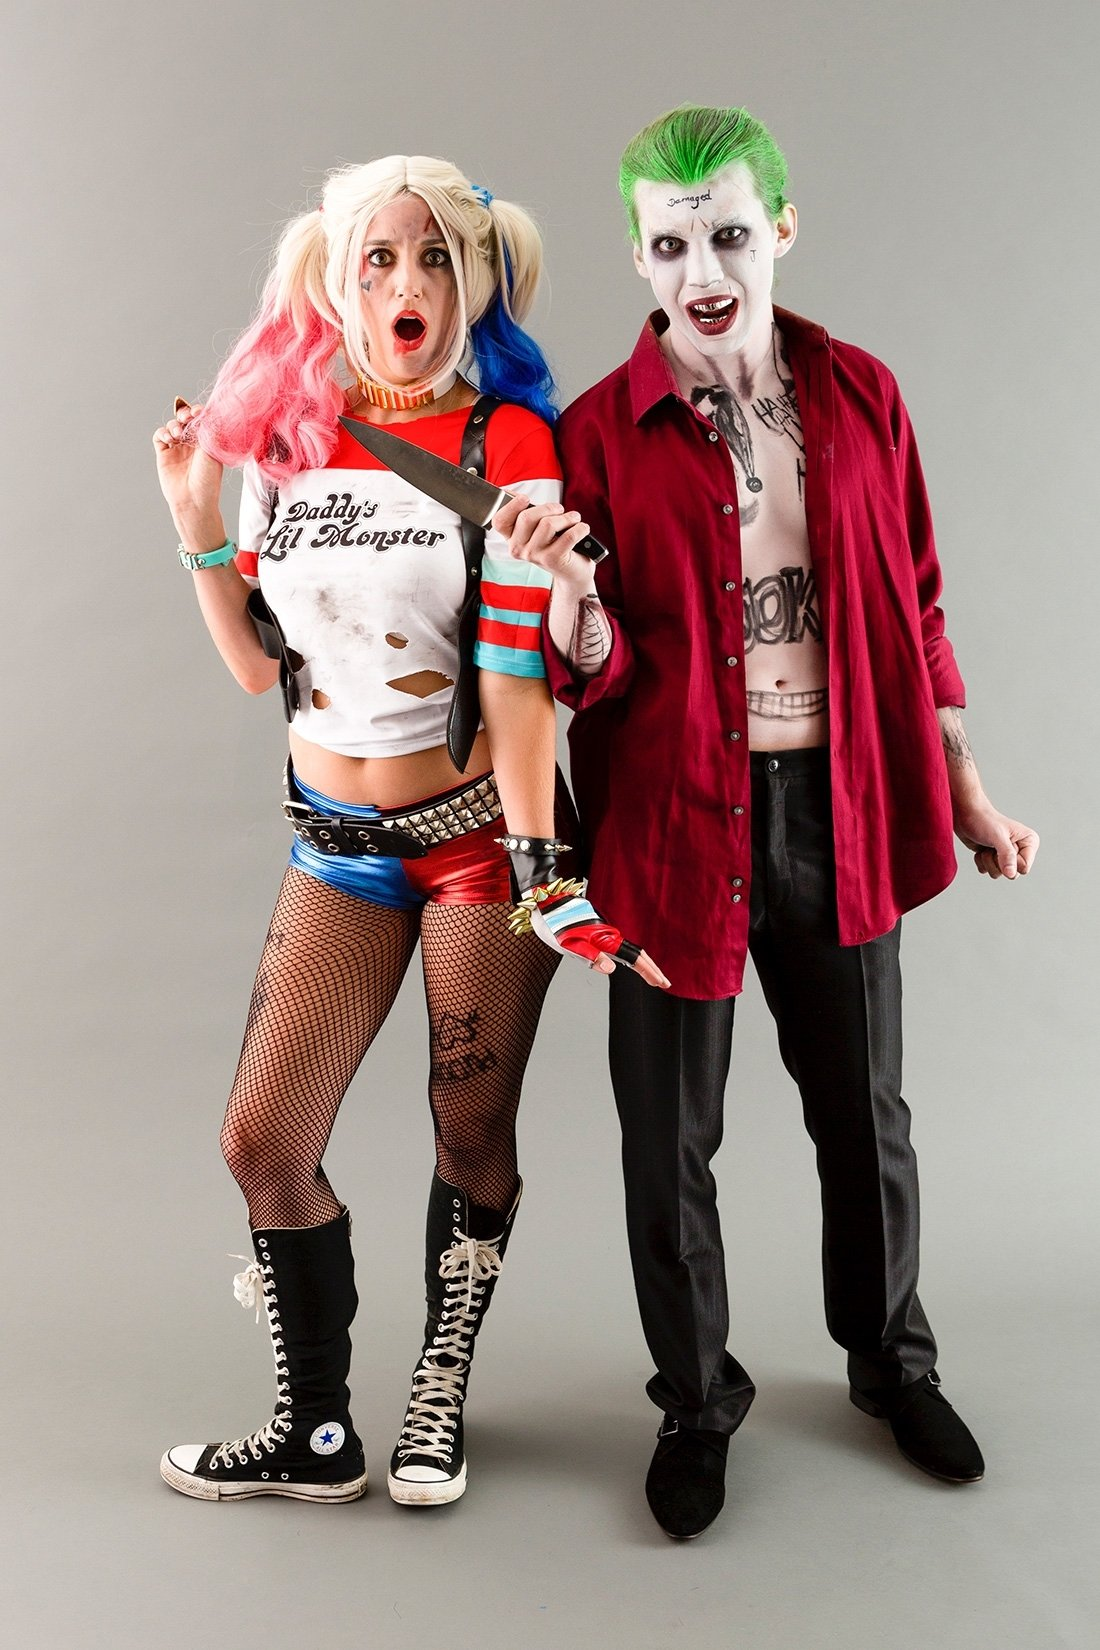 10 Stylish Cute Couple Halloween Costumes Ideas cute couple halloween costumes ideas extraordinary ken and barbie 1 2021